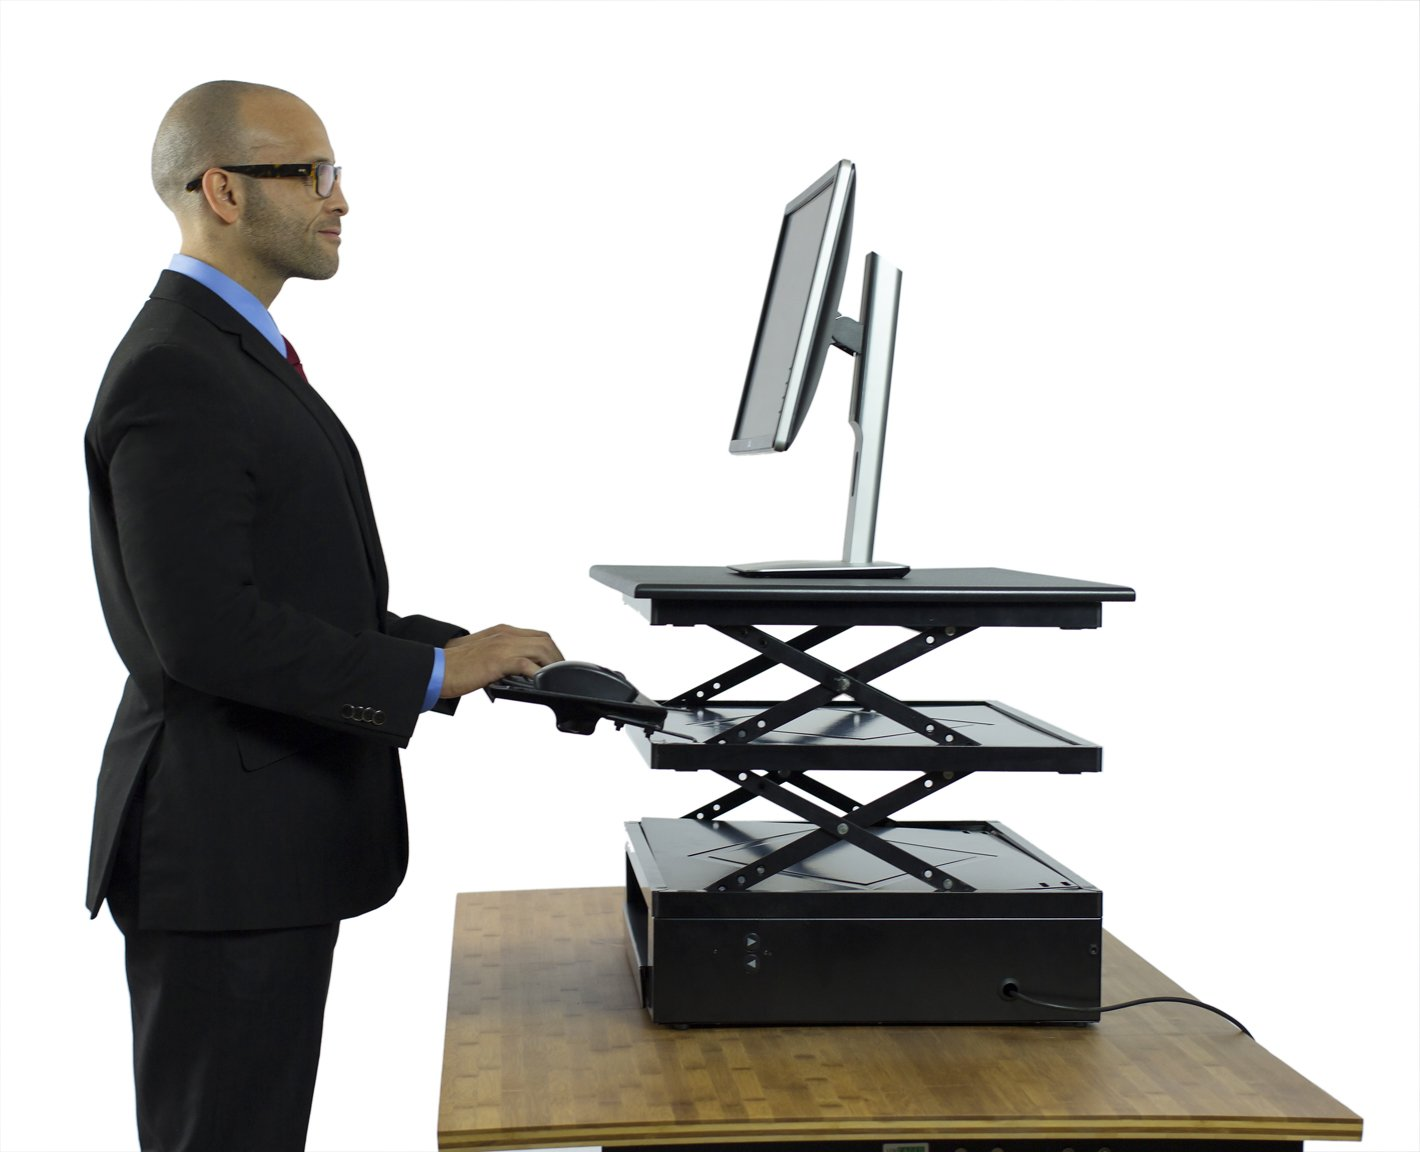 Uncaged Ergonomics Electric Change Desk, Height Adjustable Standing Desk Converter, Ergonomic Stand Up Desk Conversion Kit (CDE-b) by Uncaged Ergonomics (Image #1)